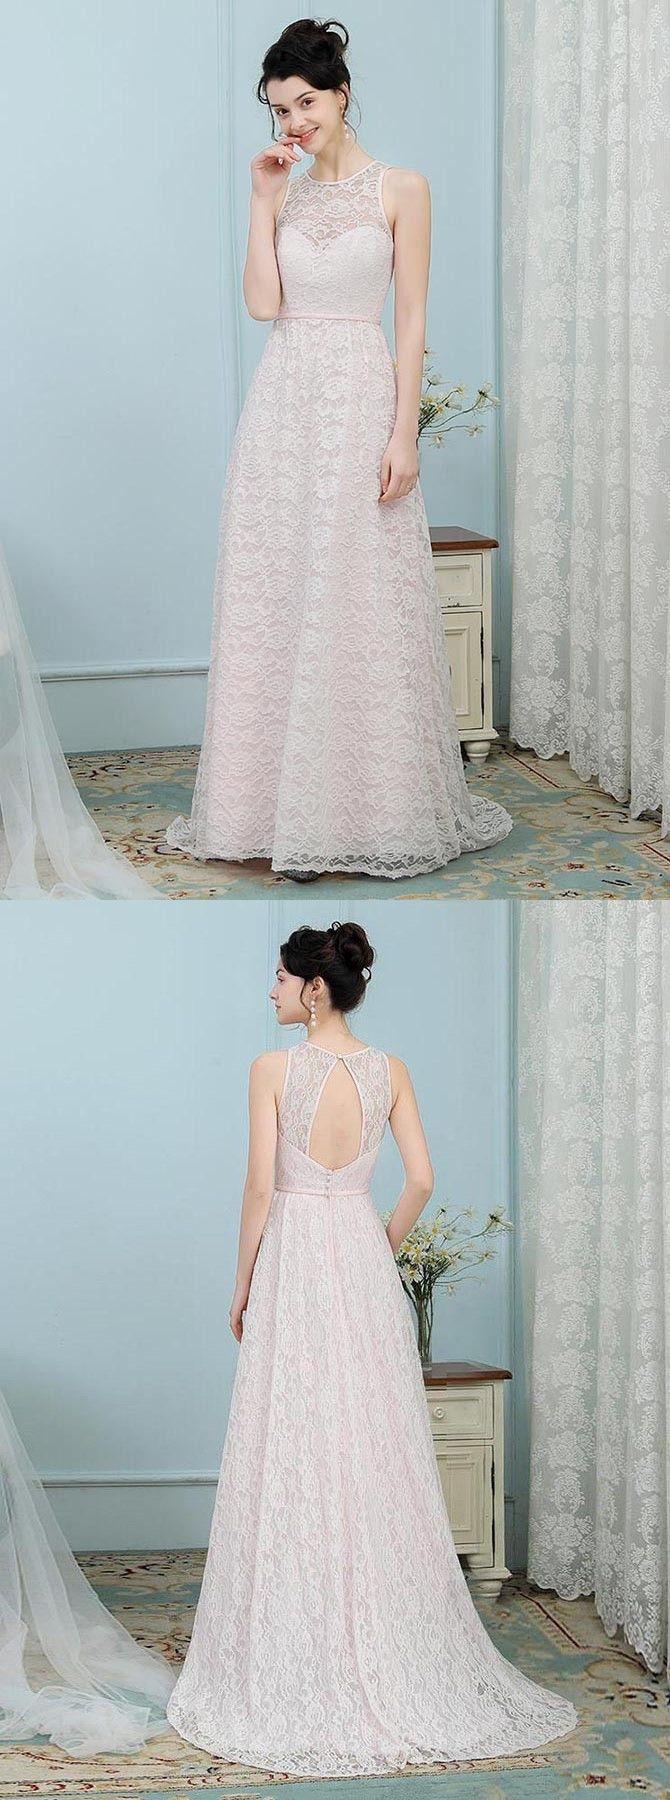 A-Line Round Neck Open Pink Pearl Pink Lace Bridesmaid Dress | Prom ...